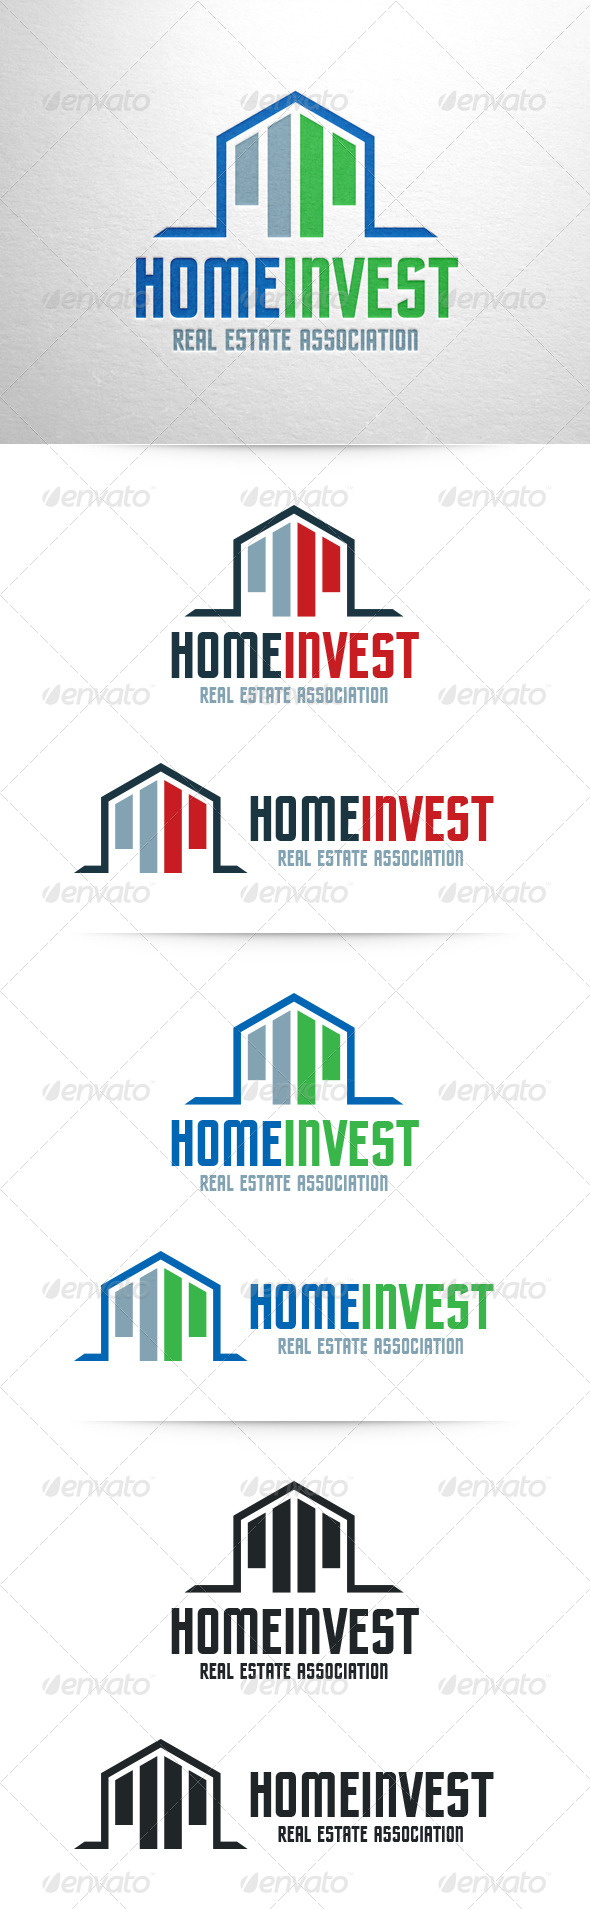 GraphicRiver Home Invest Logo Template 6825730